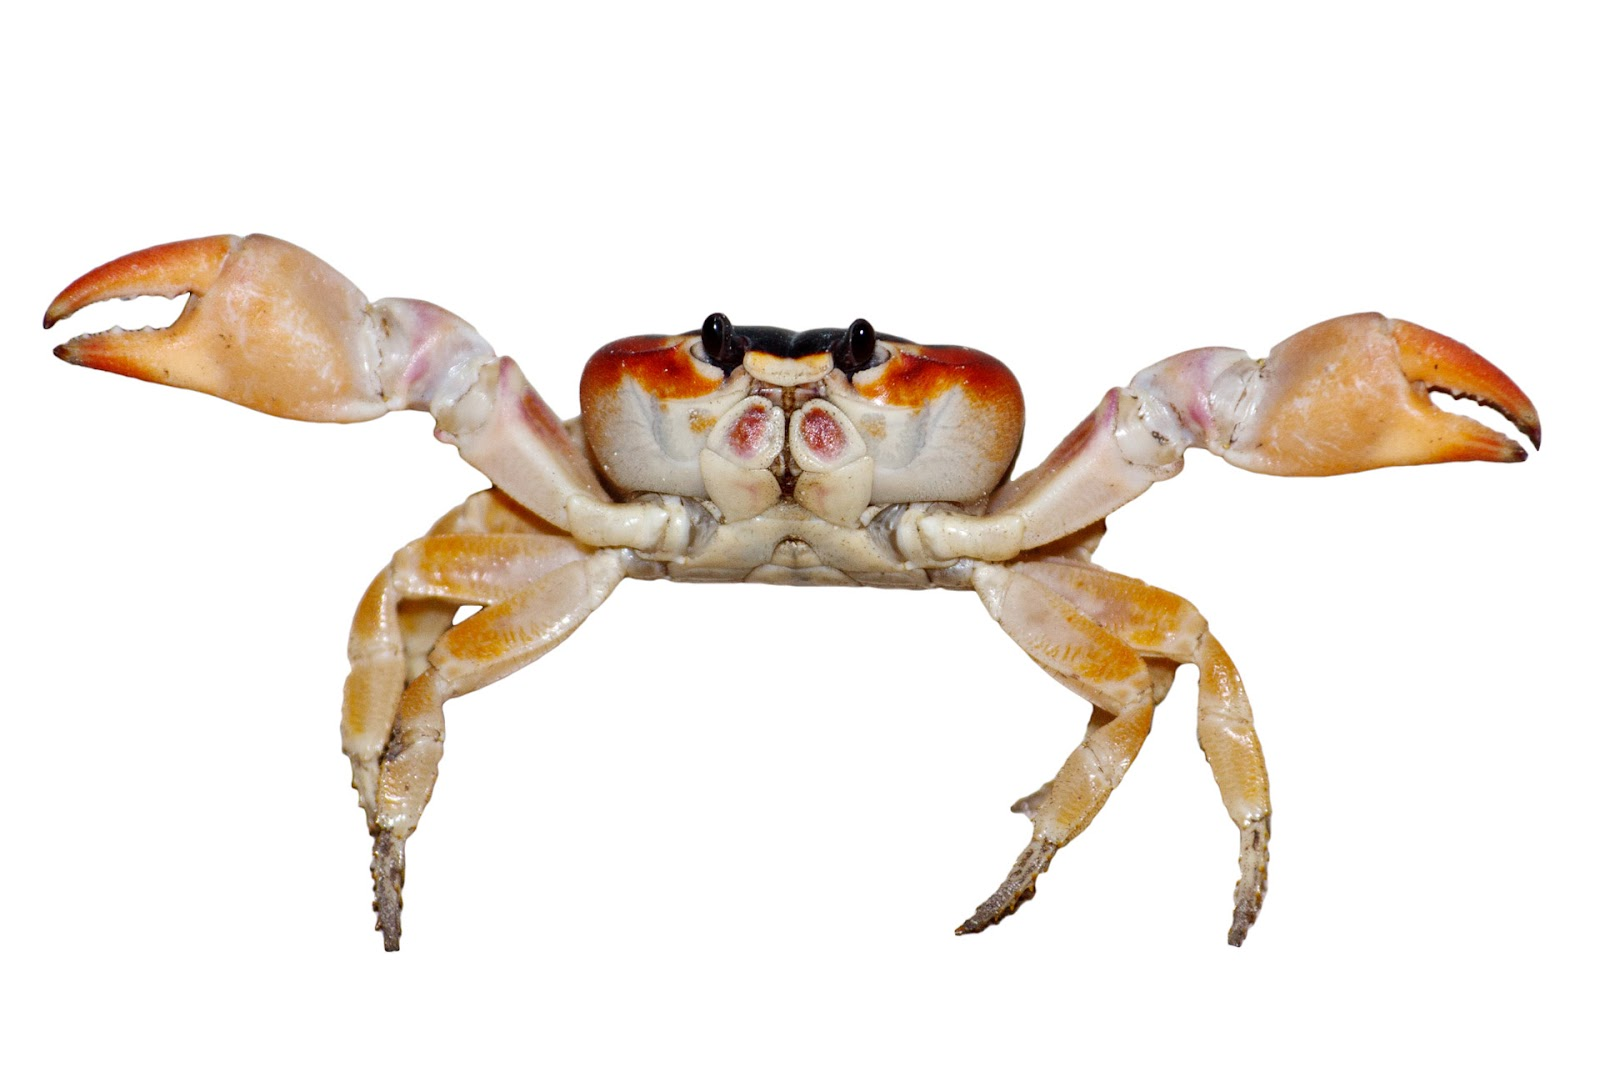 http://www.publicdomainpictures.net/pictures/30000/velka/crab-isolated.jpg